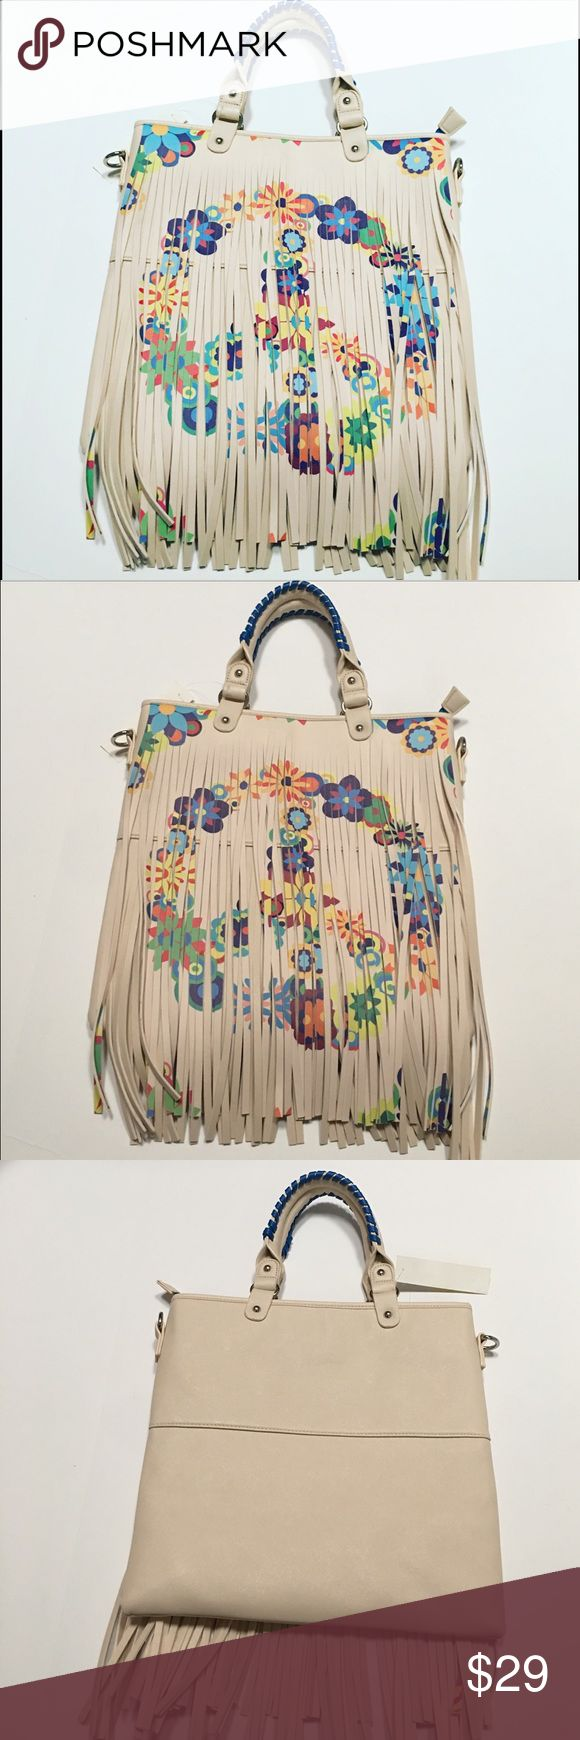 🆕Fringe Peace Sign Large Crossbody Bag Very spring like and just a gorgeous bag. The measurements are 14 1/2 inches width and 13 1/2 inches length. The shoulder straps can be removed if you just want to use the handles or it makes a very cute Crossbody bag. You can see the size in the last picture I took with the bag. Bags Crossbody Bags